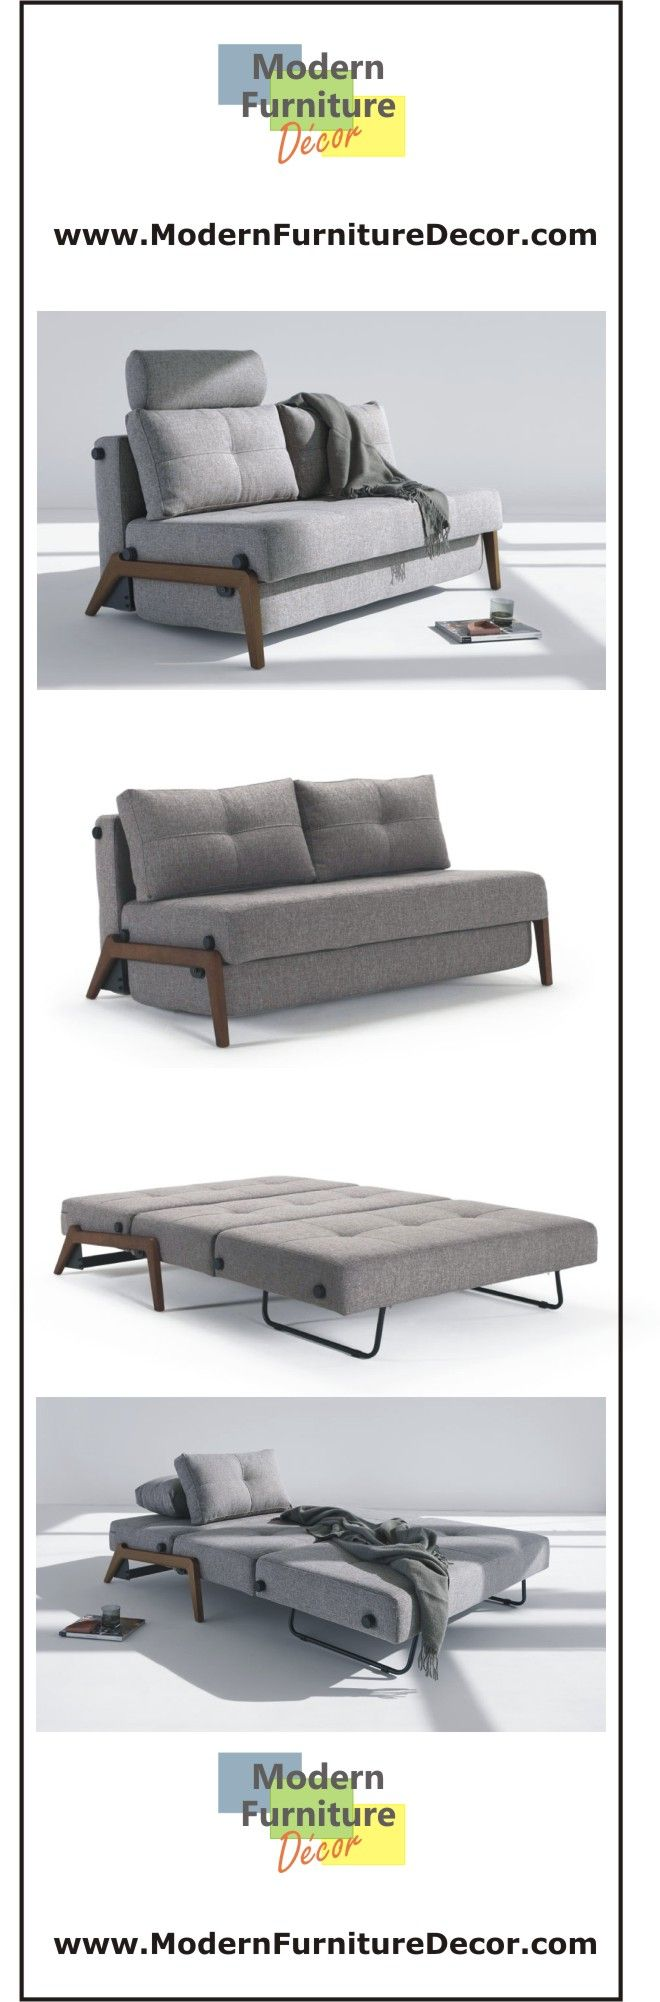 The modern Cubed Deluxe Sofa features an innovative, compact sofa bed design. With it's modern space saving design, this queen size sleeper sofa is presentable from all angles.